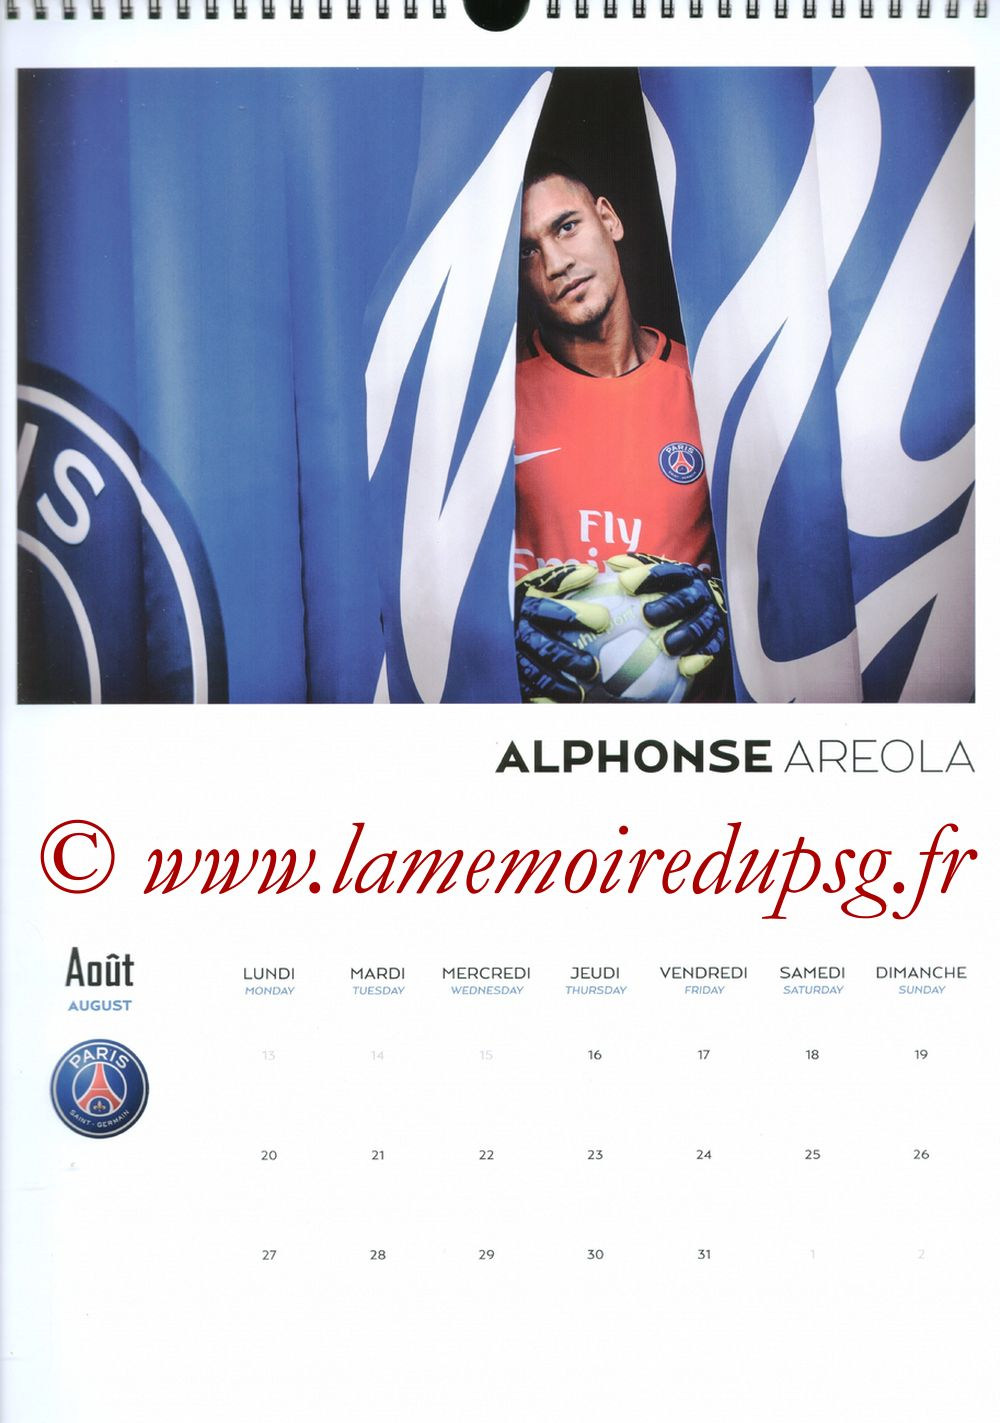 Calendrier PSG 2018 - Page 16 - Alphonse AREOLA